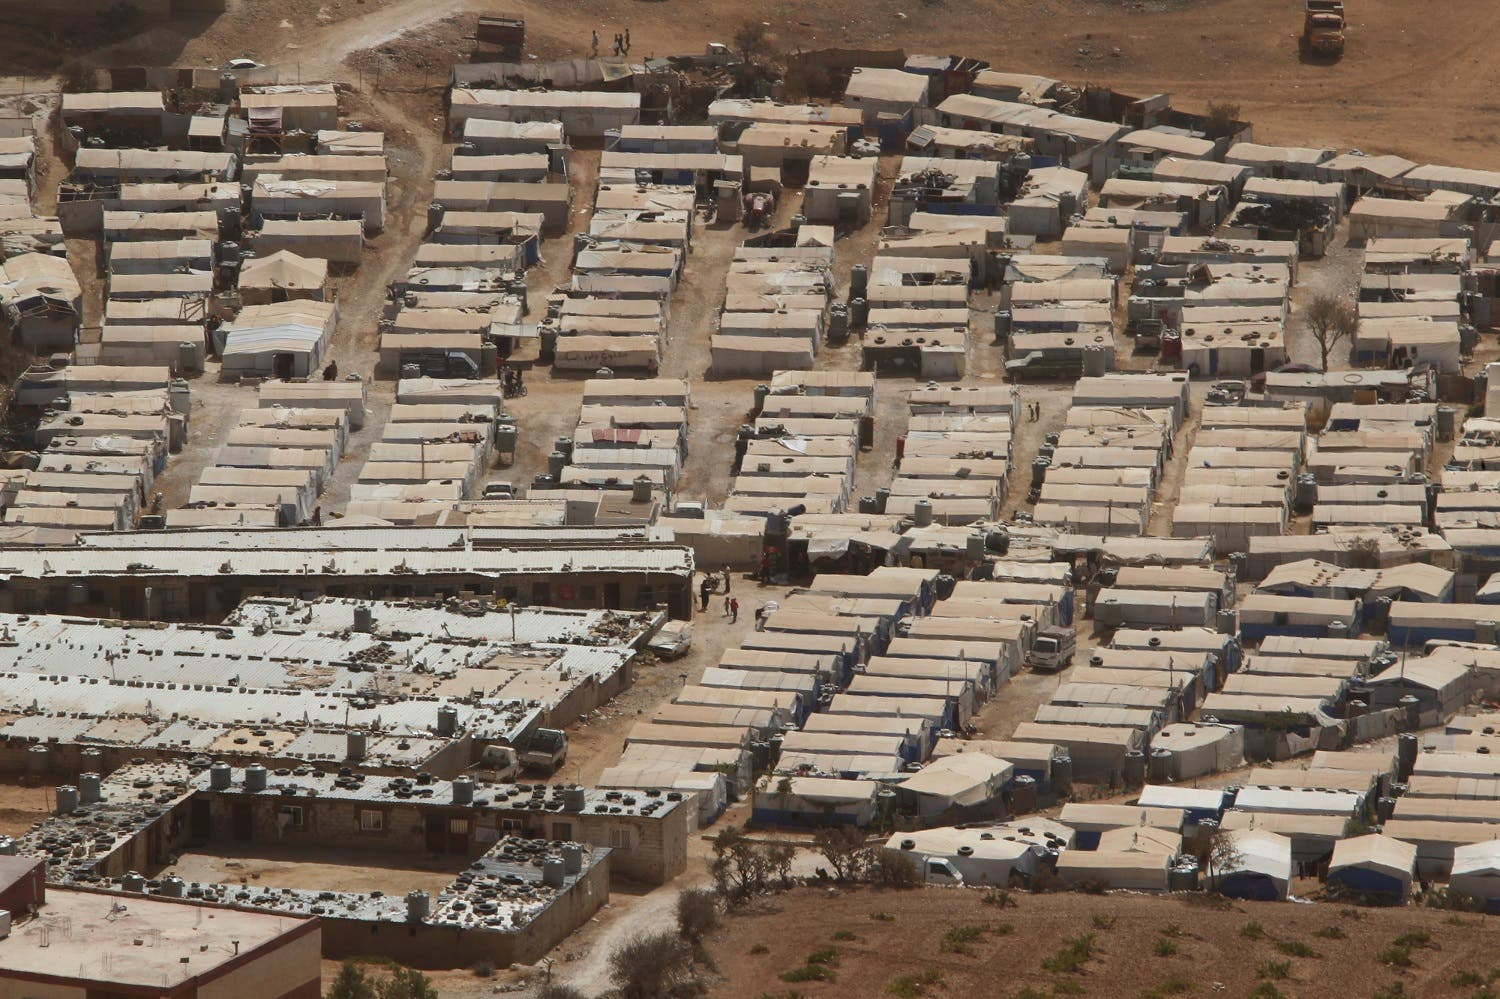 A general view shows tents of Syrian refugees on the outskirts of the Lebanese town of Arsal, near the border with Syria, Lebanon September 21, 2016. Picture taken September 21, 2016. REUTERS/Mohamed Azakir